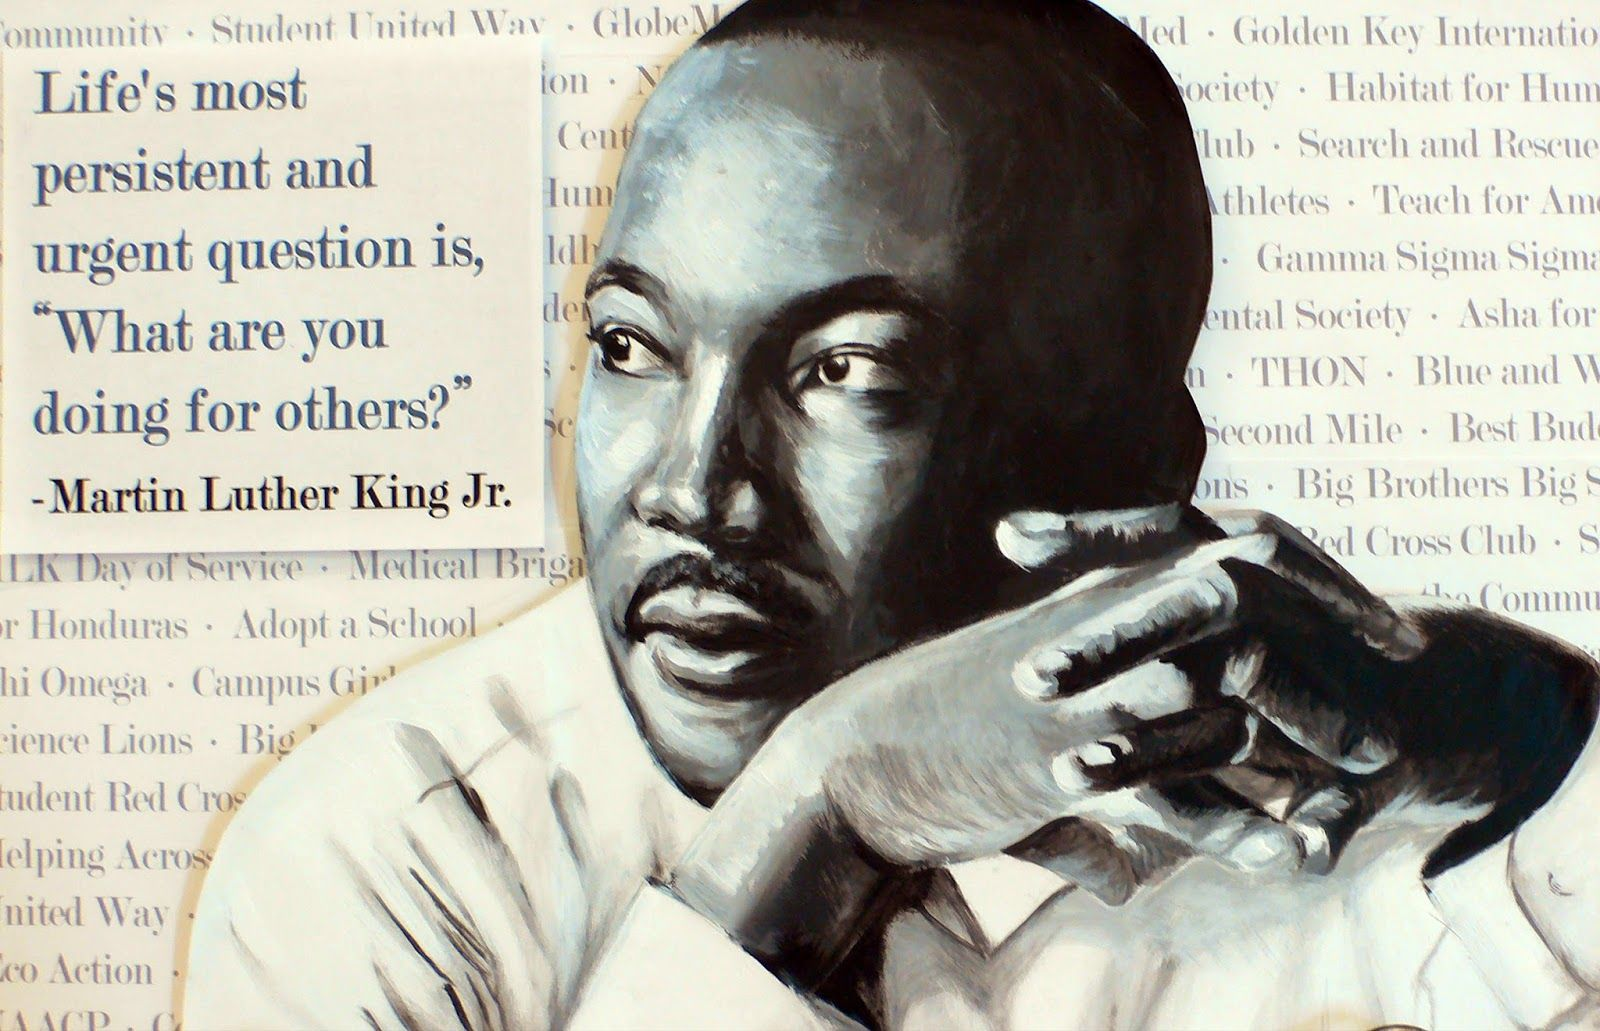 Mlk Wallpaper - The Wallpaper